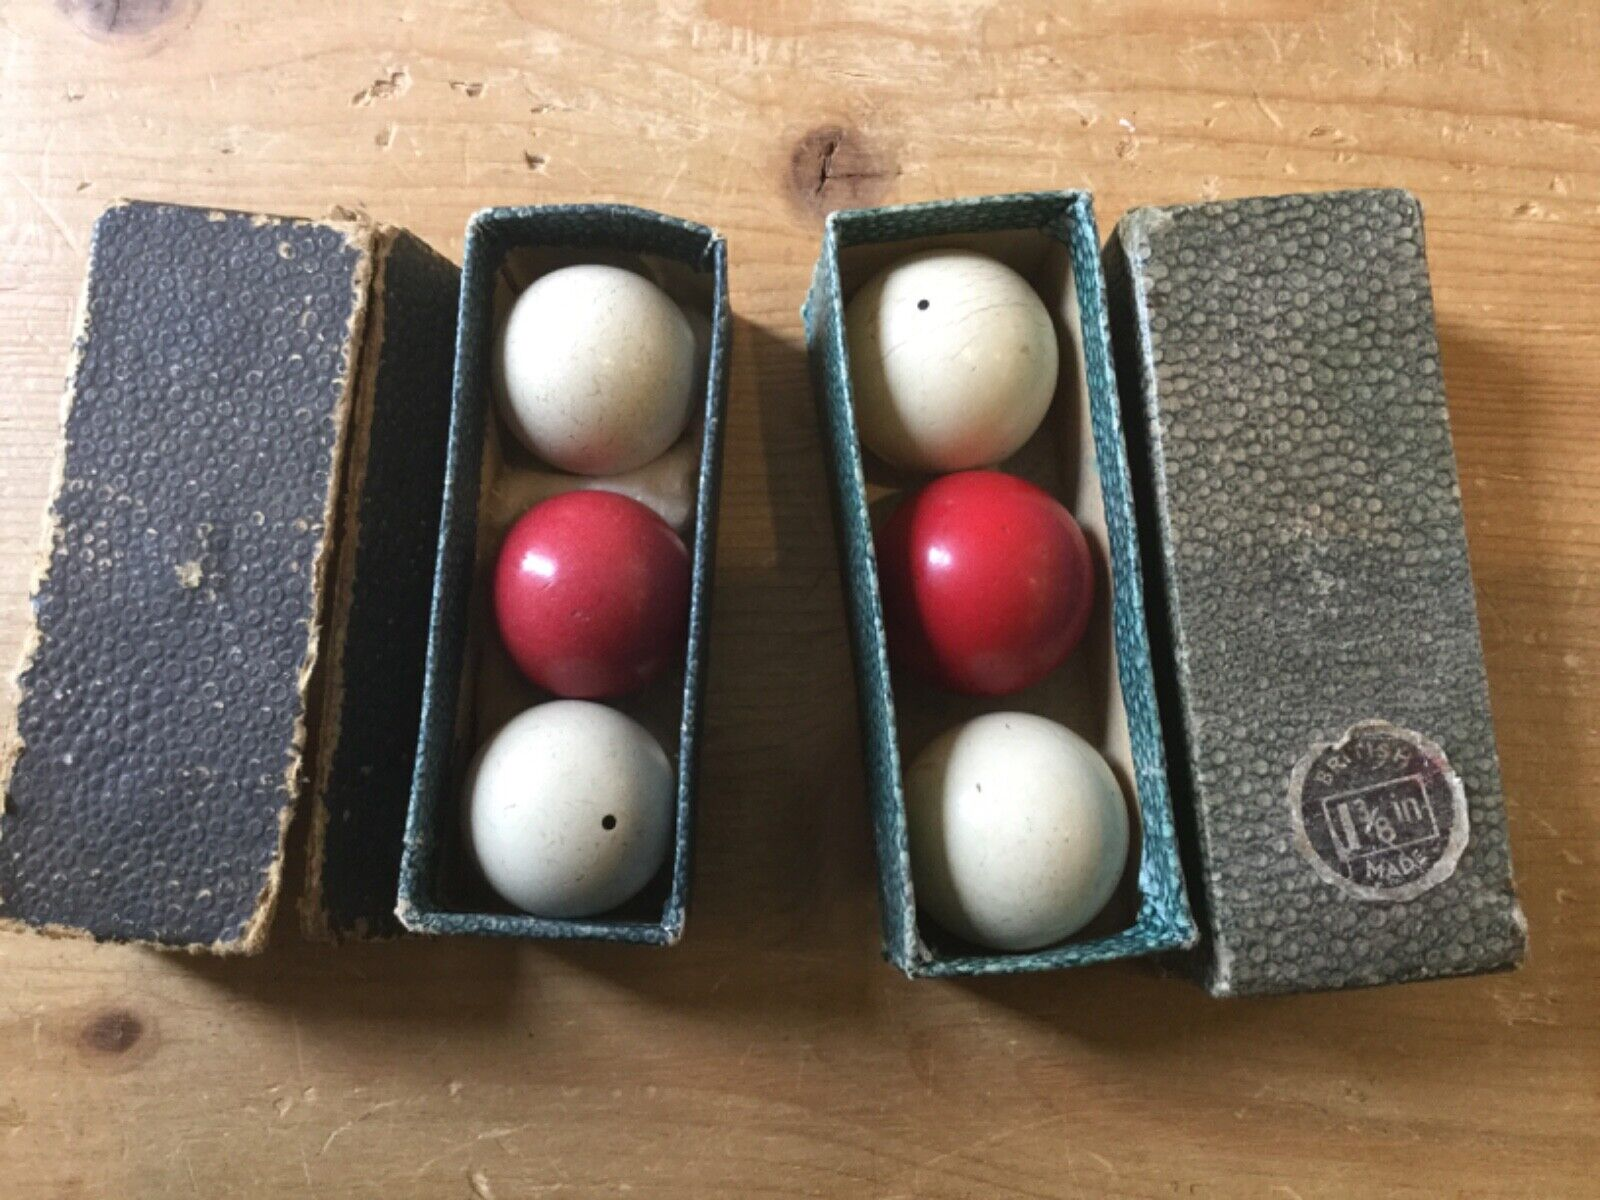 TWO SETS OF ANTIQUE BILLIARD BALLS - 1 1/4 and 1 3/8 - IN BOXES